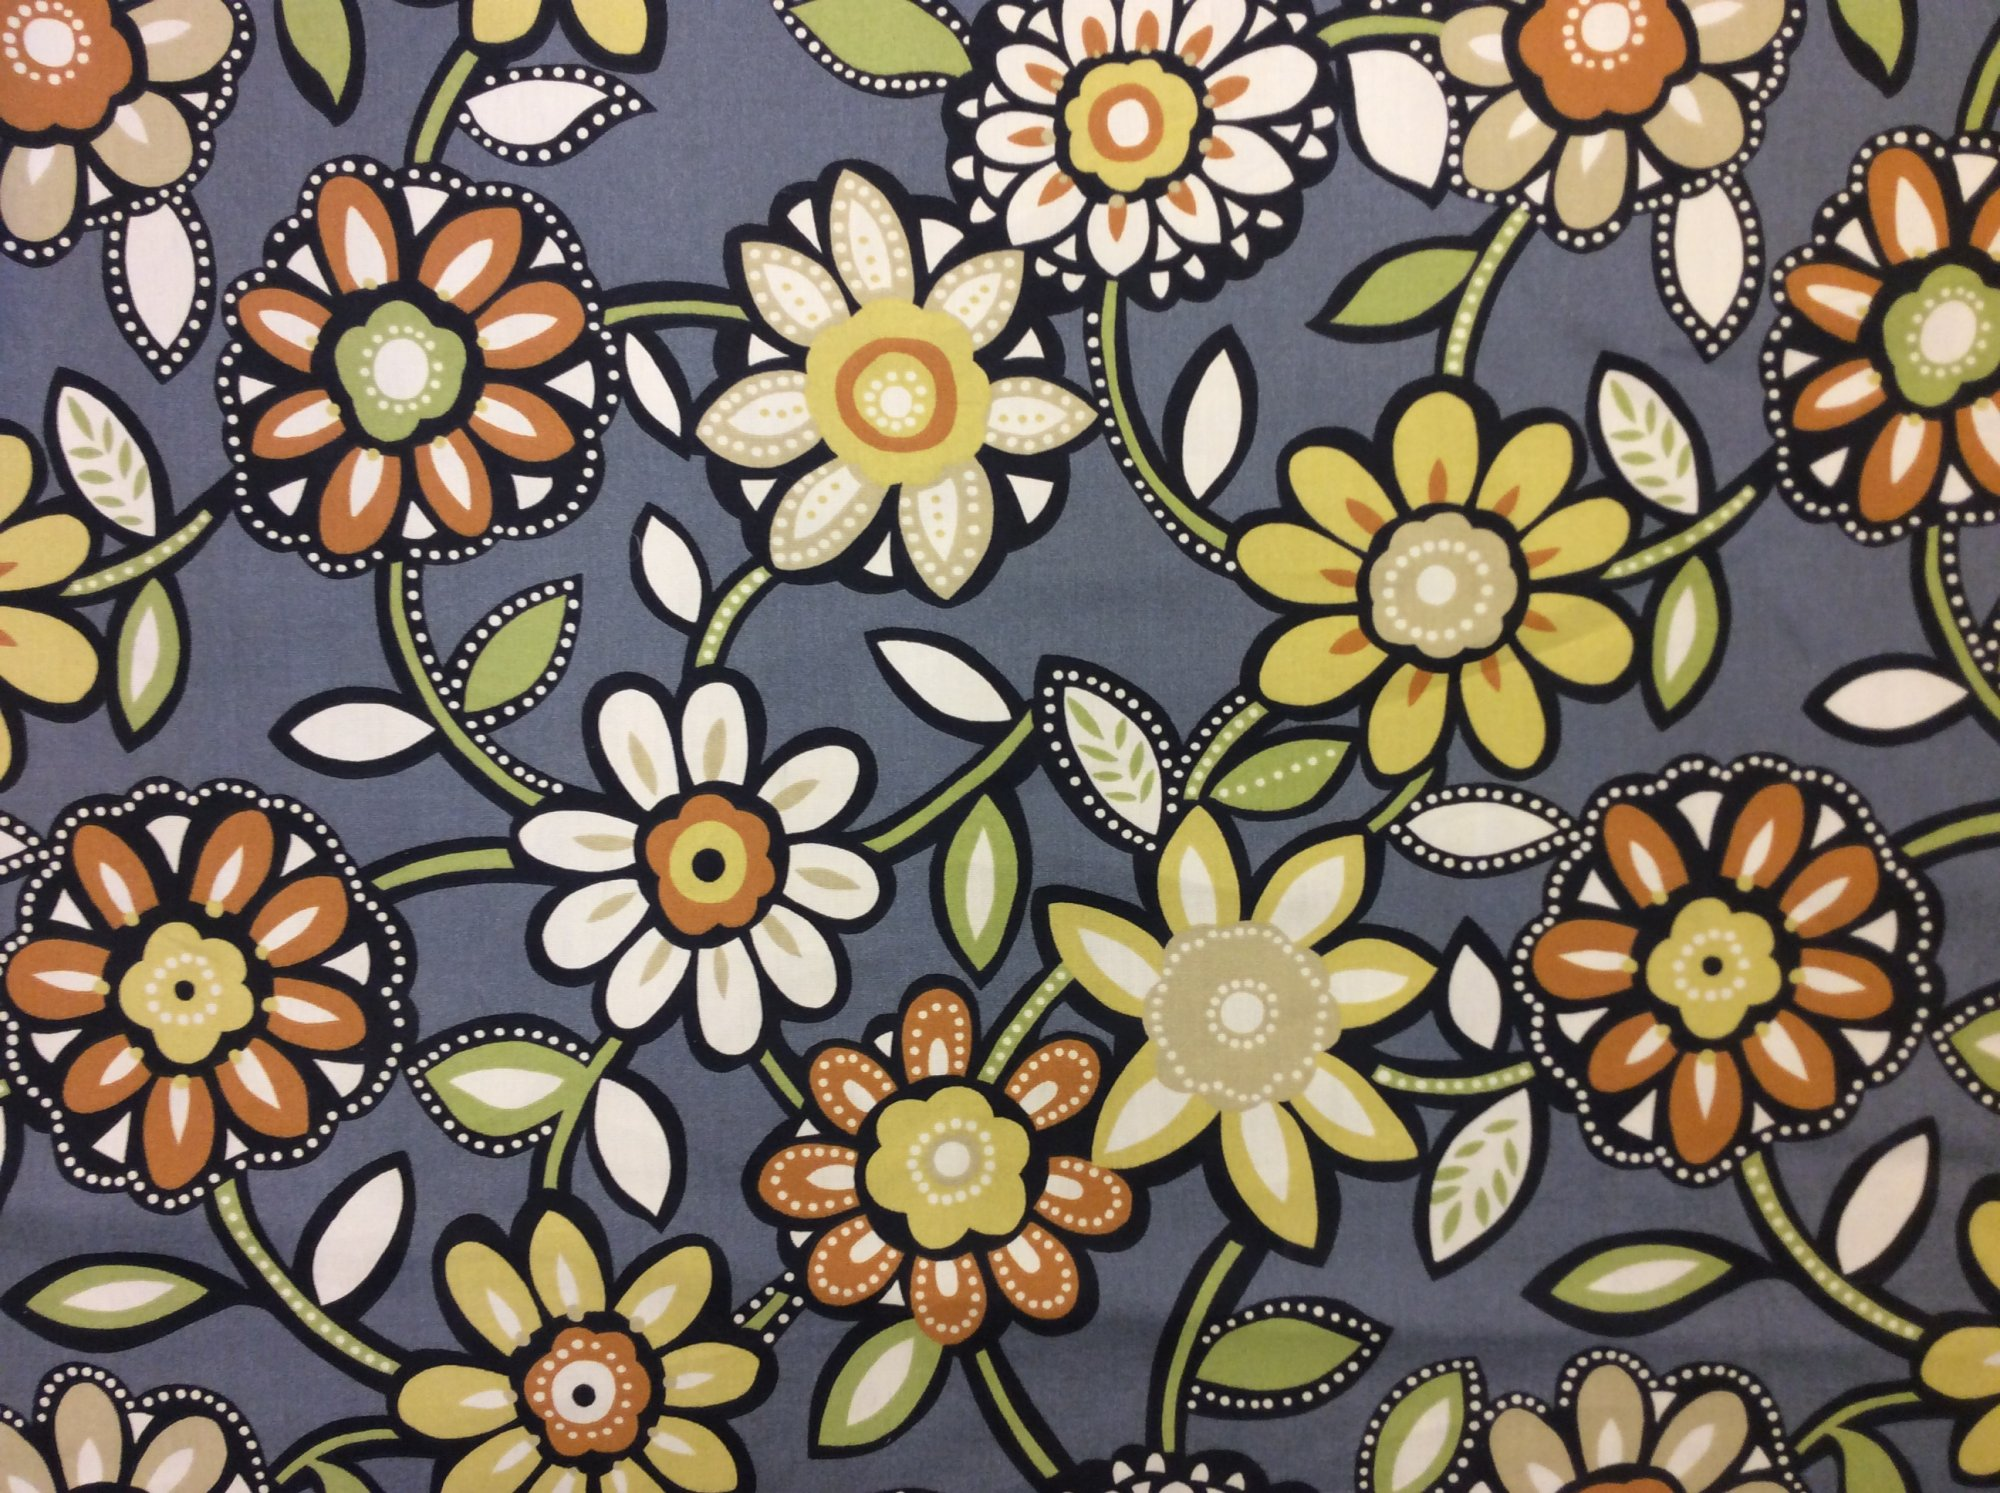 Floral Contemporary Scandinavian Modern Style Floral Print Outdoor Acrylic Fabric Heavy Weight S568